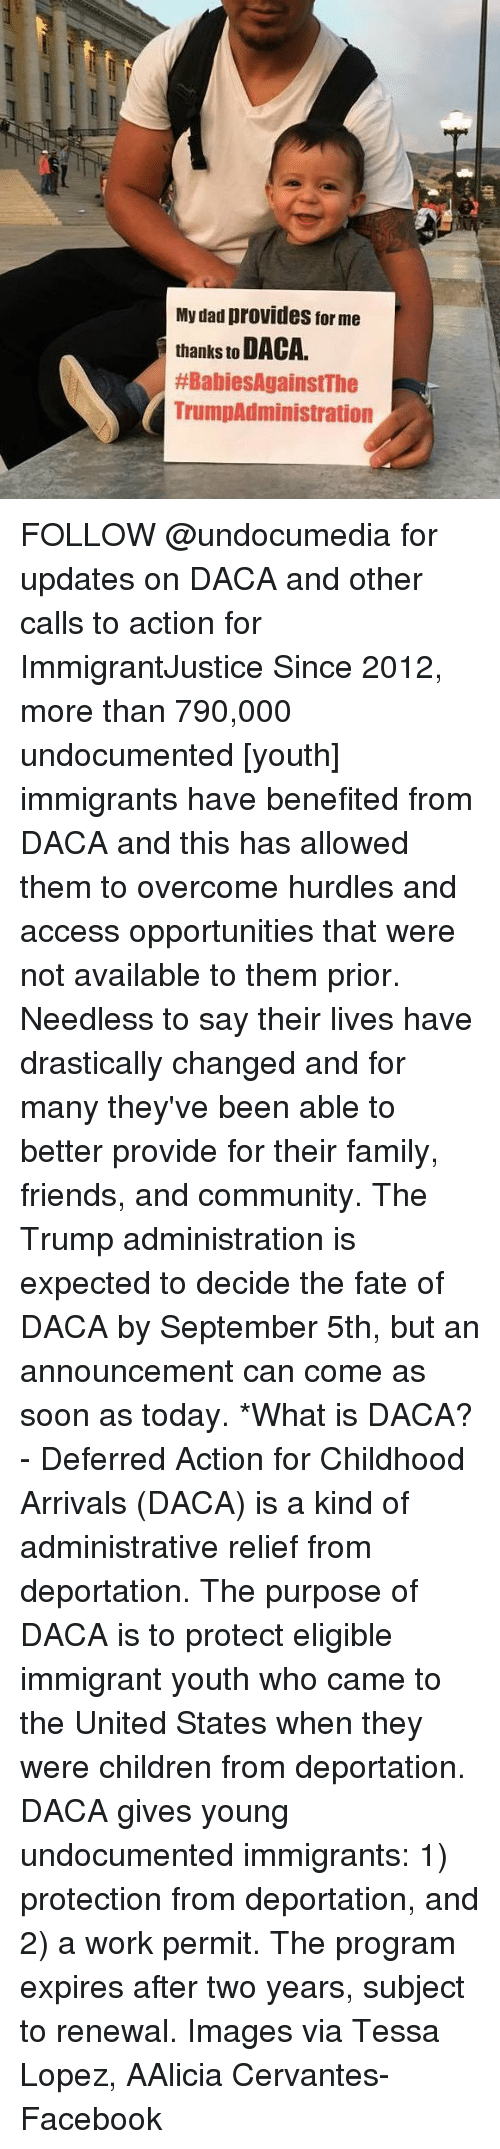 Programing: My dad provides for me  thanks to DACA.  #BabiesAgainstThe  TrumpAdministration FOLLOW @undocumedia for updates on DACA and other calls to action for ImmigrantJustice Since 2012, more than 790,000 undocumented [youth] immigrants have benefited from DACA and this has allowed them to overcome hurdles and access opportunities that were not available to them prior. Needless to say their lives have drastically changed and for many they've been able to better provide for their family, friends, and community. The Trump administration is expected to decide the fate of DACA by September 5th, but an announcement can come as soon as today. *What is DACA? - Deferred Action for Childhood Arrivals (DACA) is a kind of administrative relief from deportation. The purpose of DACA is to protect eligible immigrant youth who came to the United States when they were children from deportation. DACA gives young undocumented immigrants: 1) protection from deportation, and 2) a work permit. The program expires after two years, subject to renewal. Images via Tessa Lopez, AAlicia Cervantes-Facebook